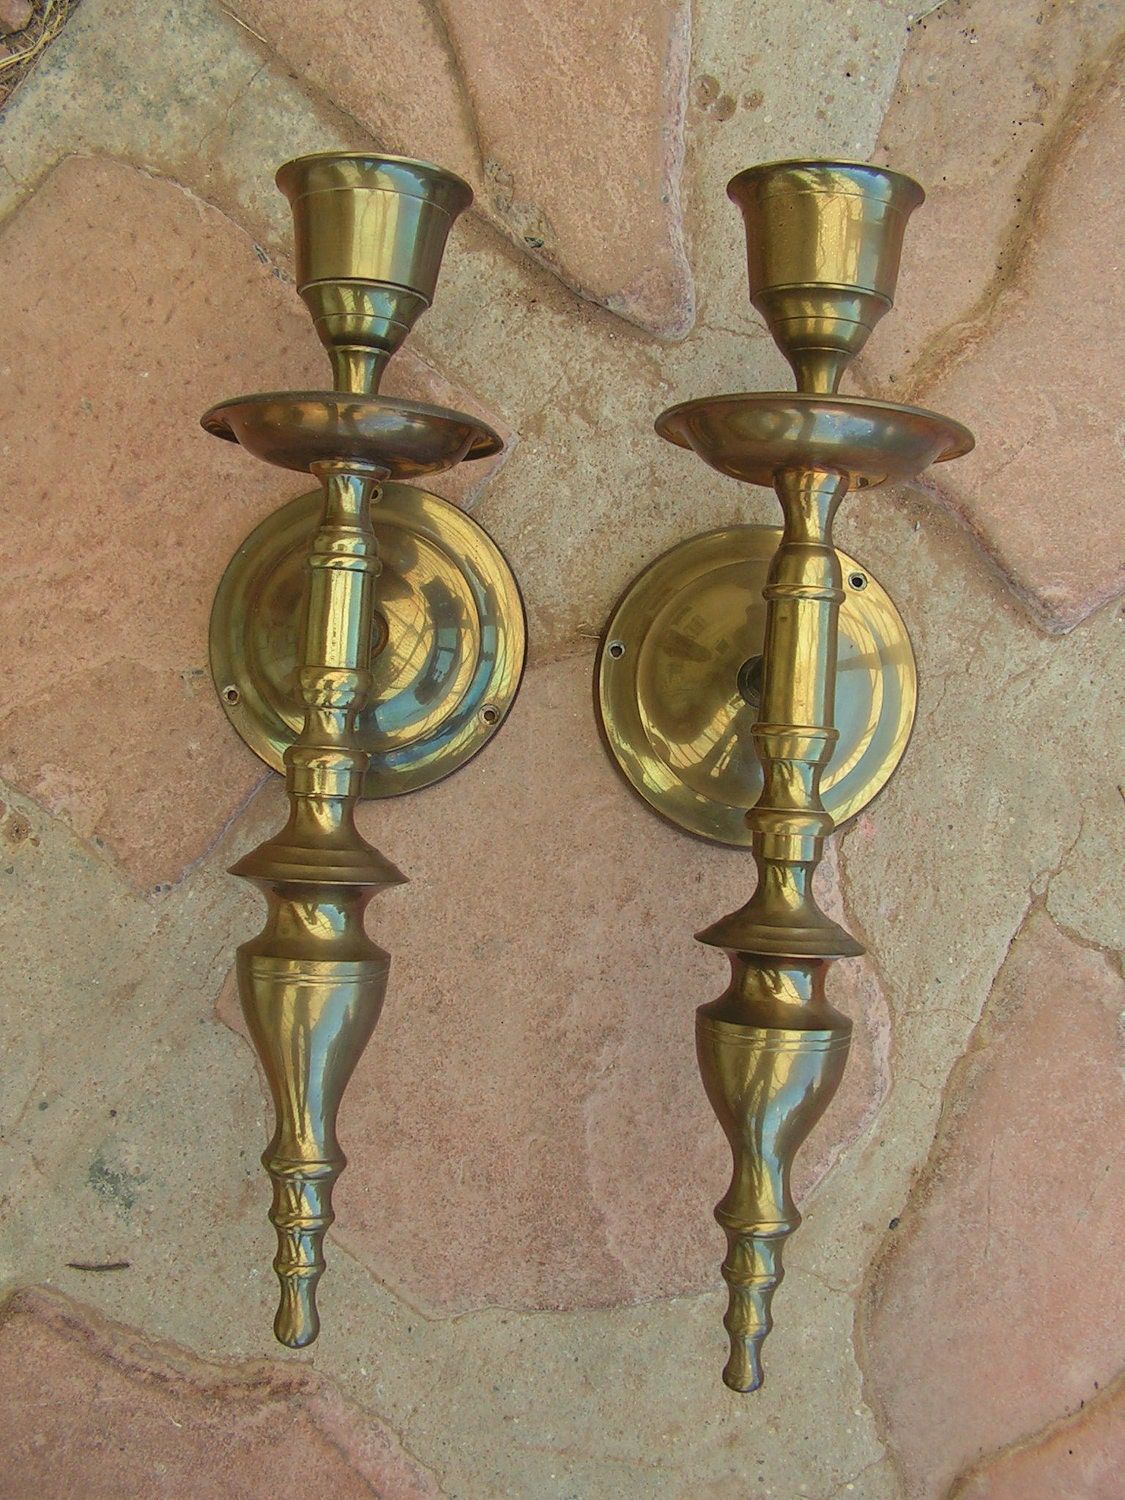 Candle Wall Sconces Vintage : Vintage Brass Wall Sconces Candle Holders Large by retrosideshow